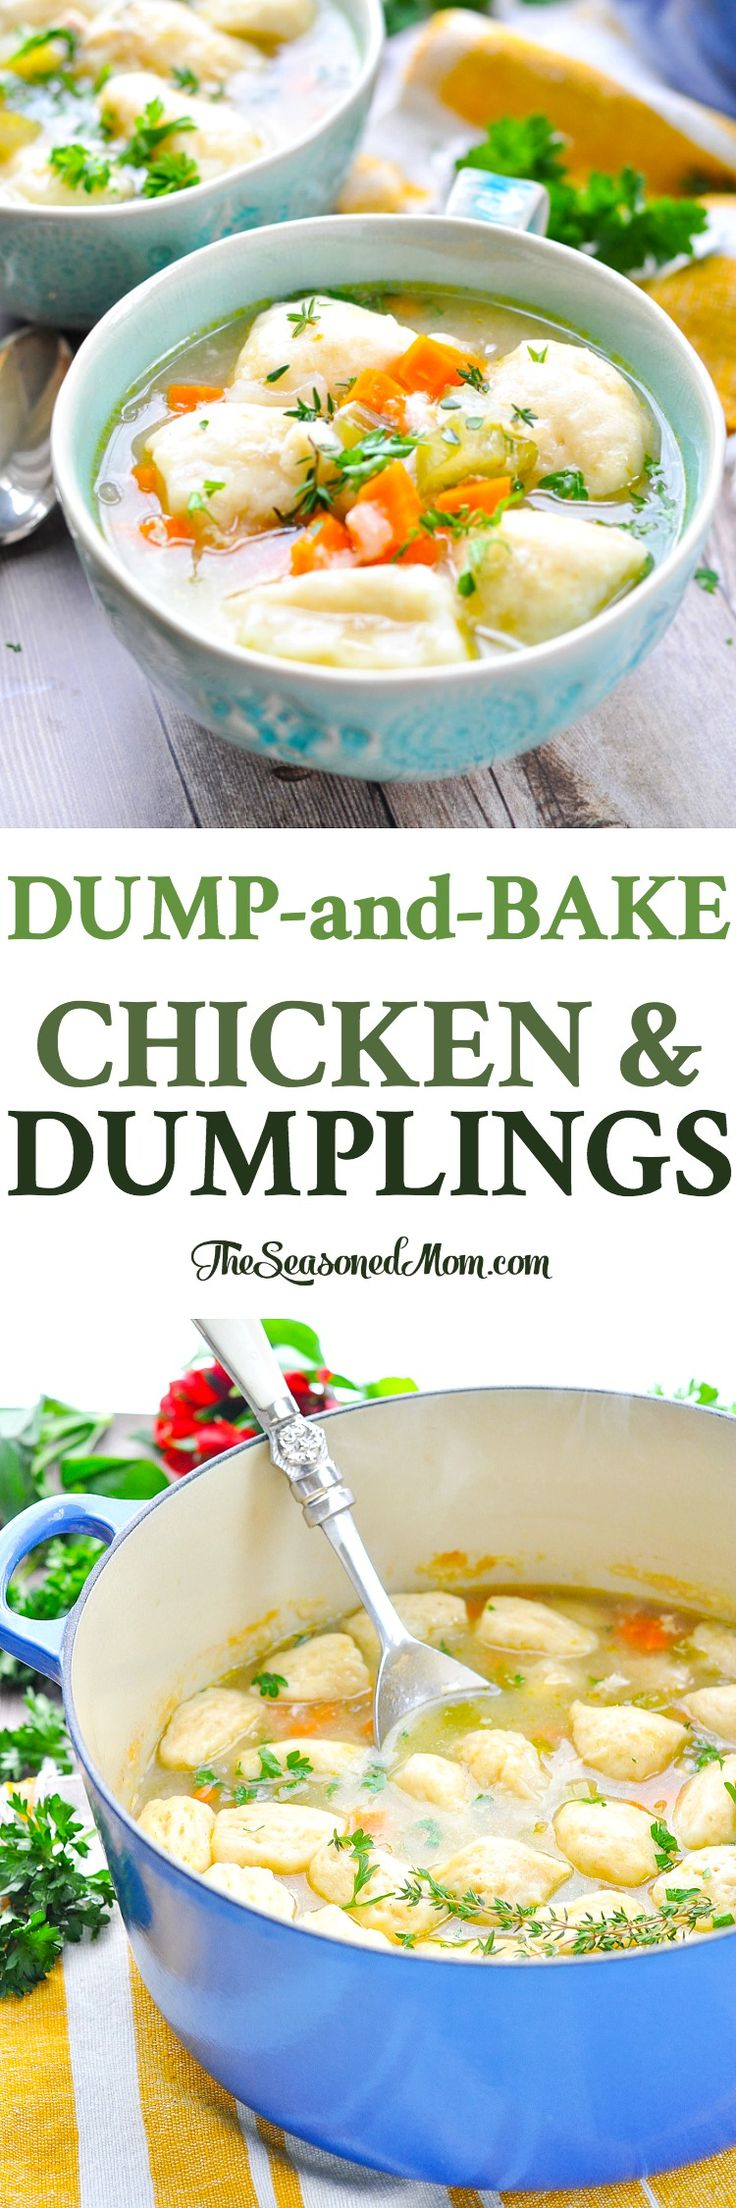 How to quickly cook an appetizing soup with dumplings